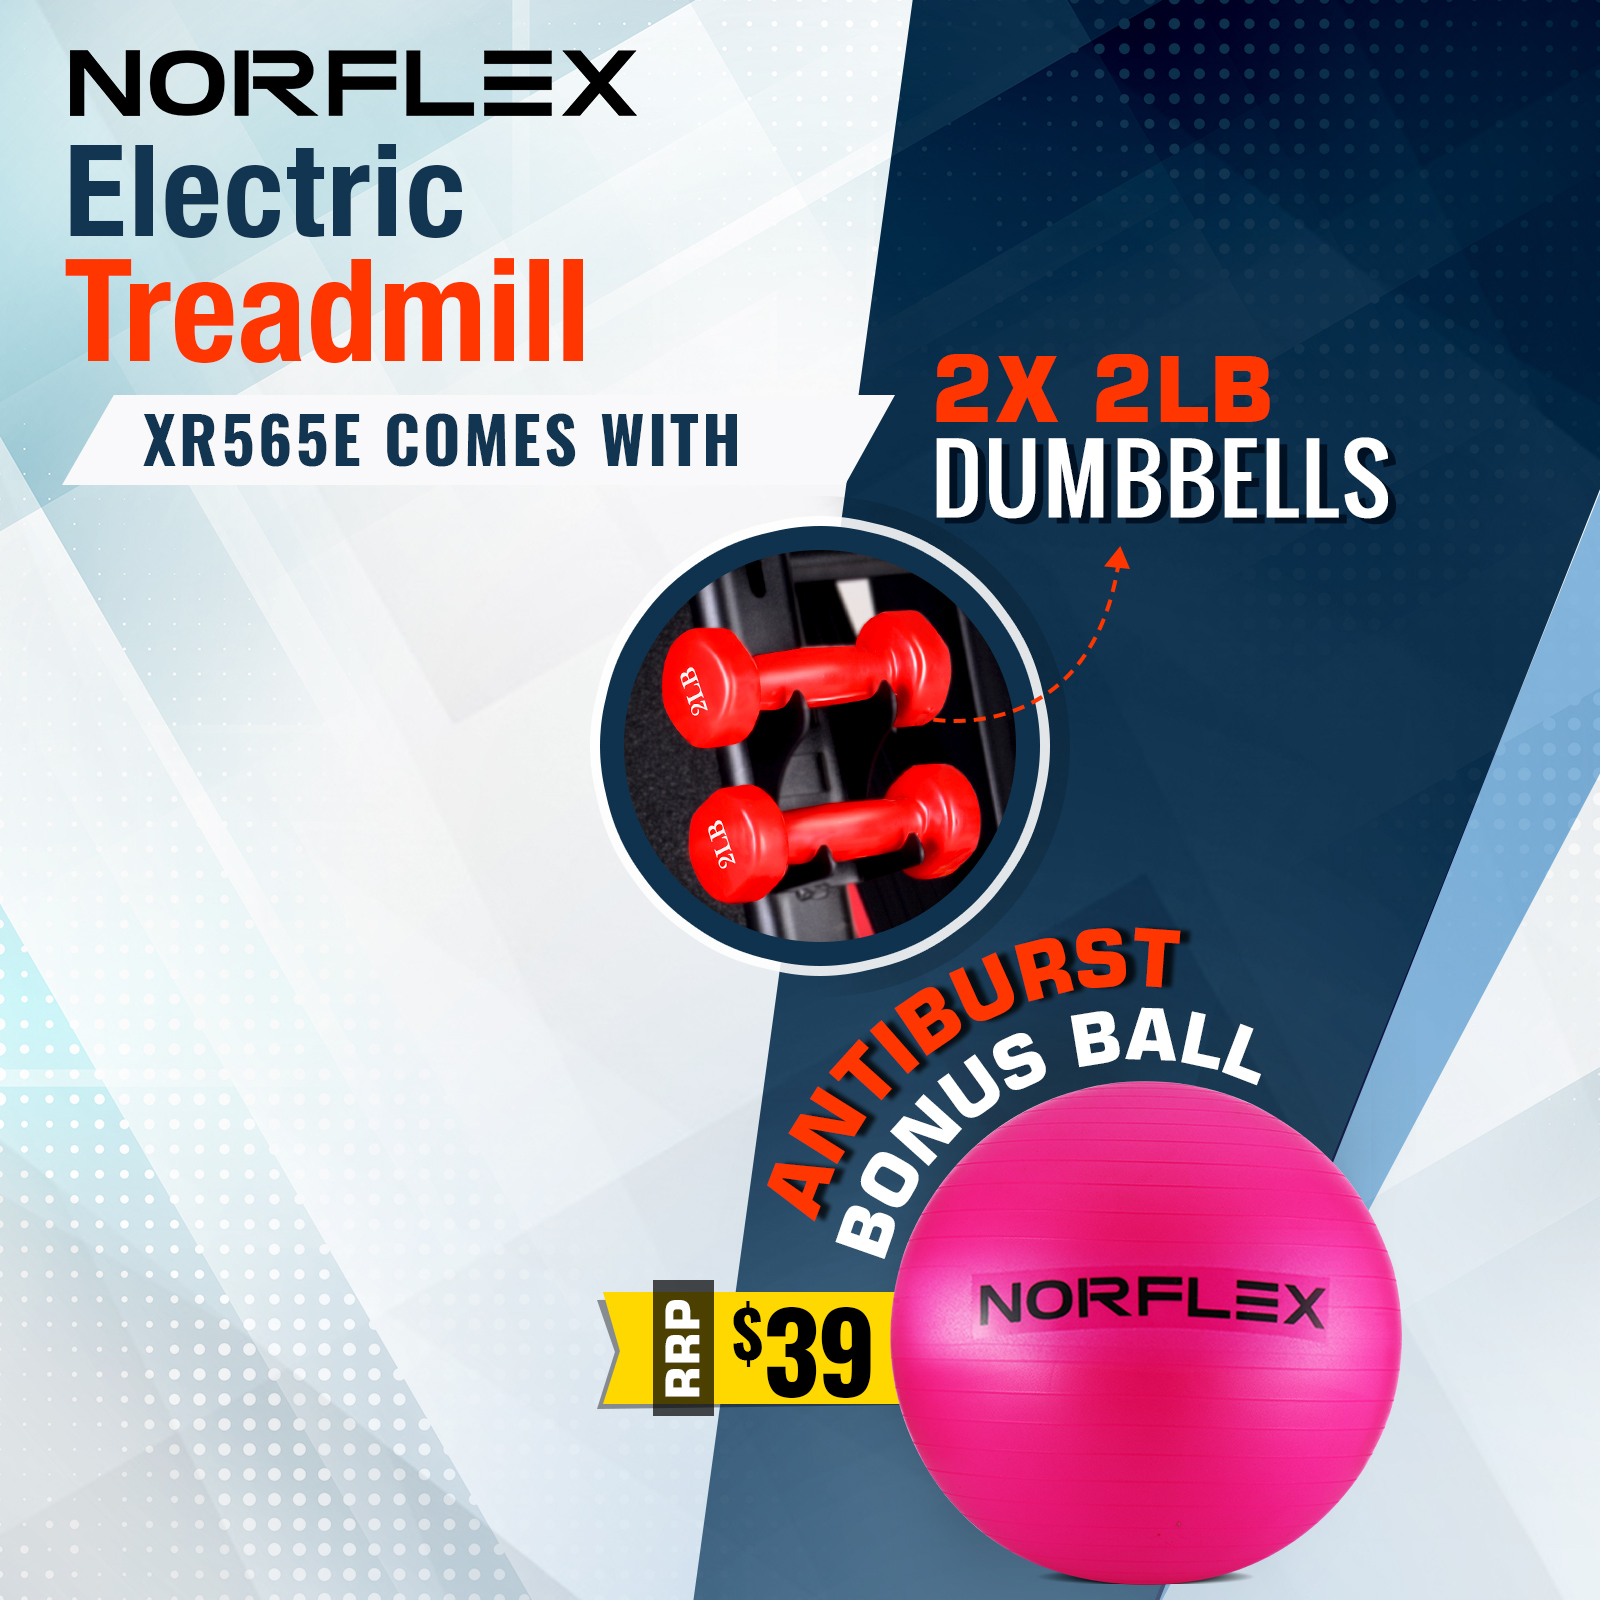 NORFLEX Electric Treadmill Home Gym Ball Exercise Machine Fitness Equipment